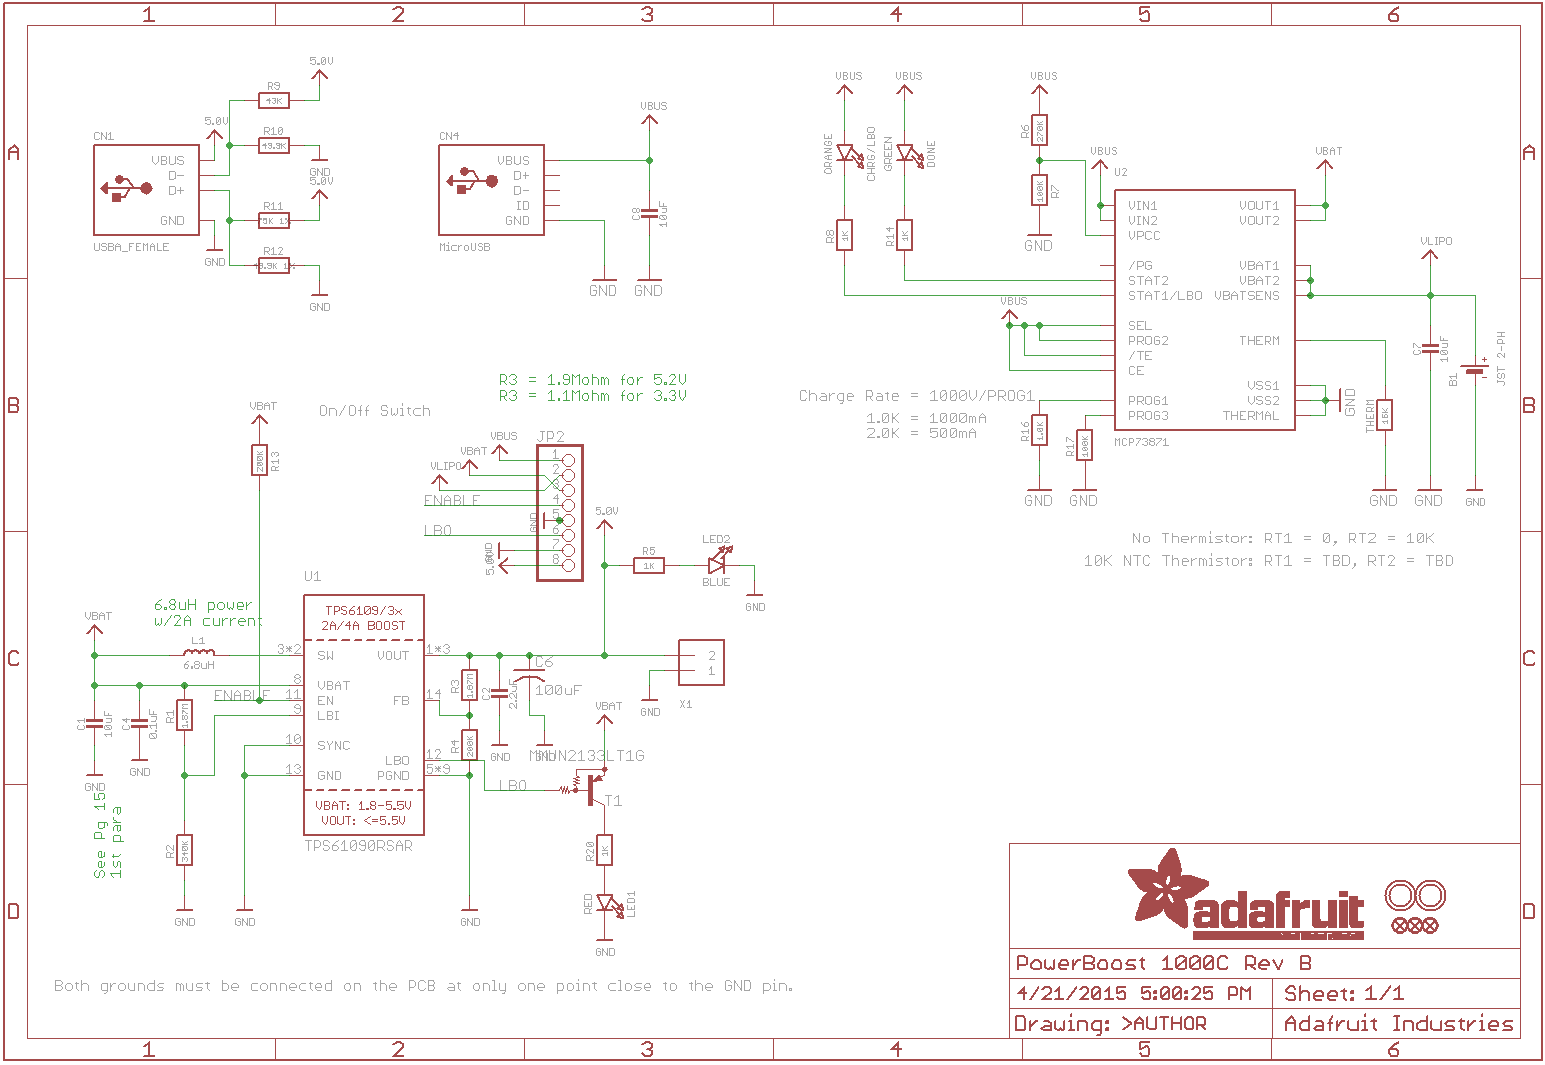 Raspberry Pi Ups With Auto Restart Forums Computer Circuit Diagram If In Doubt Dont Take Risks Use Cells A Capacity That Is 20 50 Higher Than The 1 Amp Max Charge Rate I Found Typical Safe Maximum